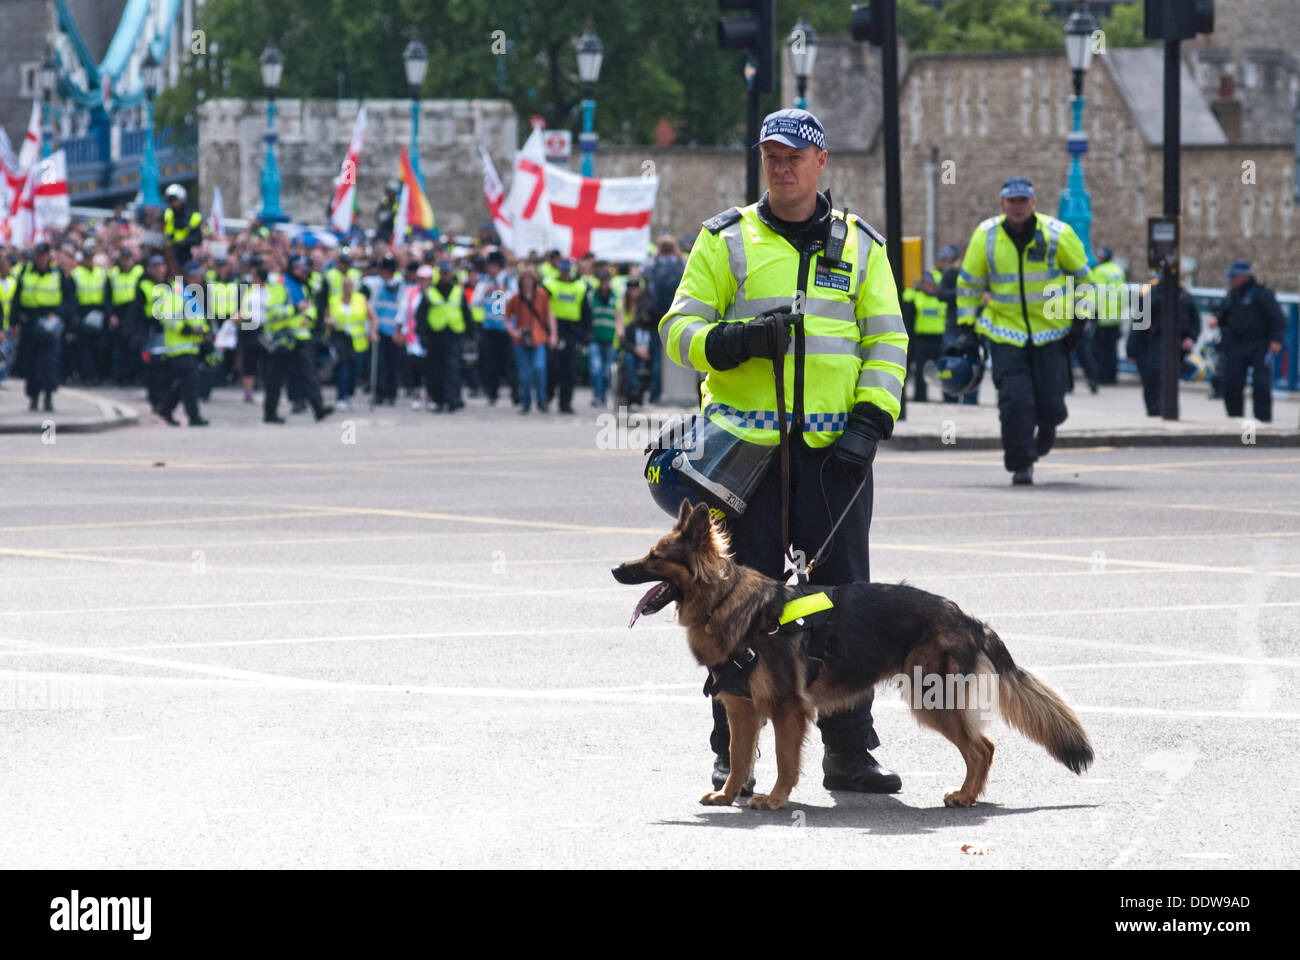 London, UK. 7th September 2013. a police officer with a dog stands ahead of hundreds of EDL supporters that attend the protest against what they see as the influence of Islam in the Tower Hamlets area. Credit:  Piero Cruciatti/Alamy Live News - Stock Image